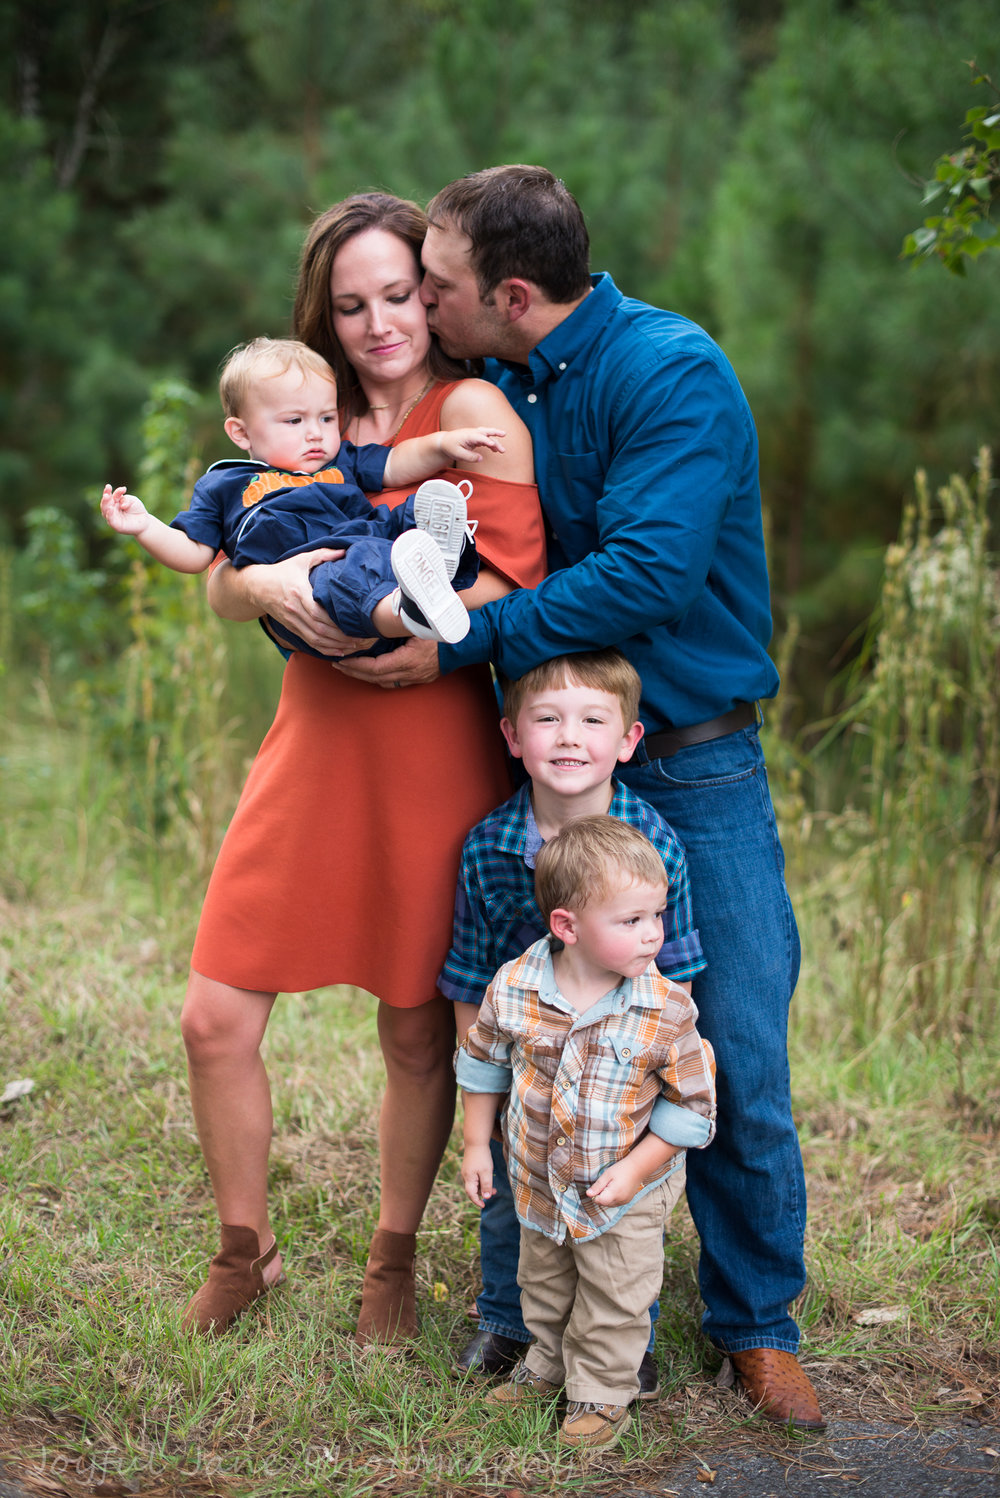 family connection photography, mom + dad + 3 boys hugging